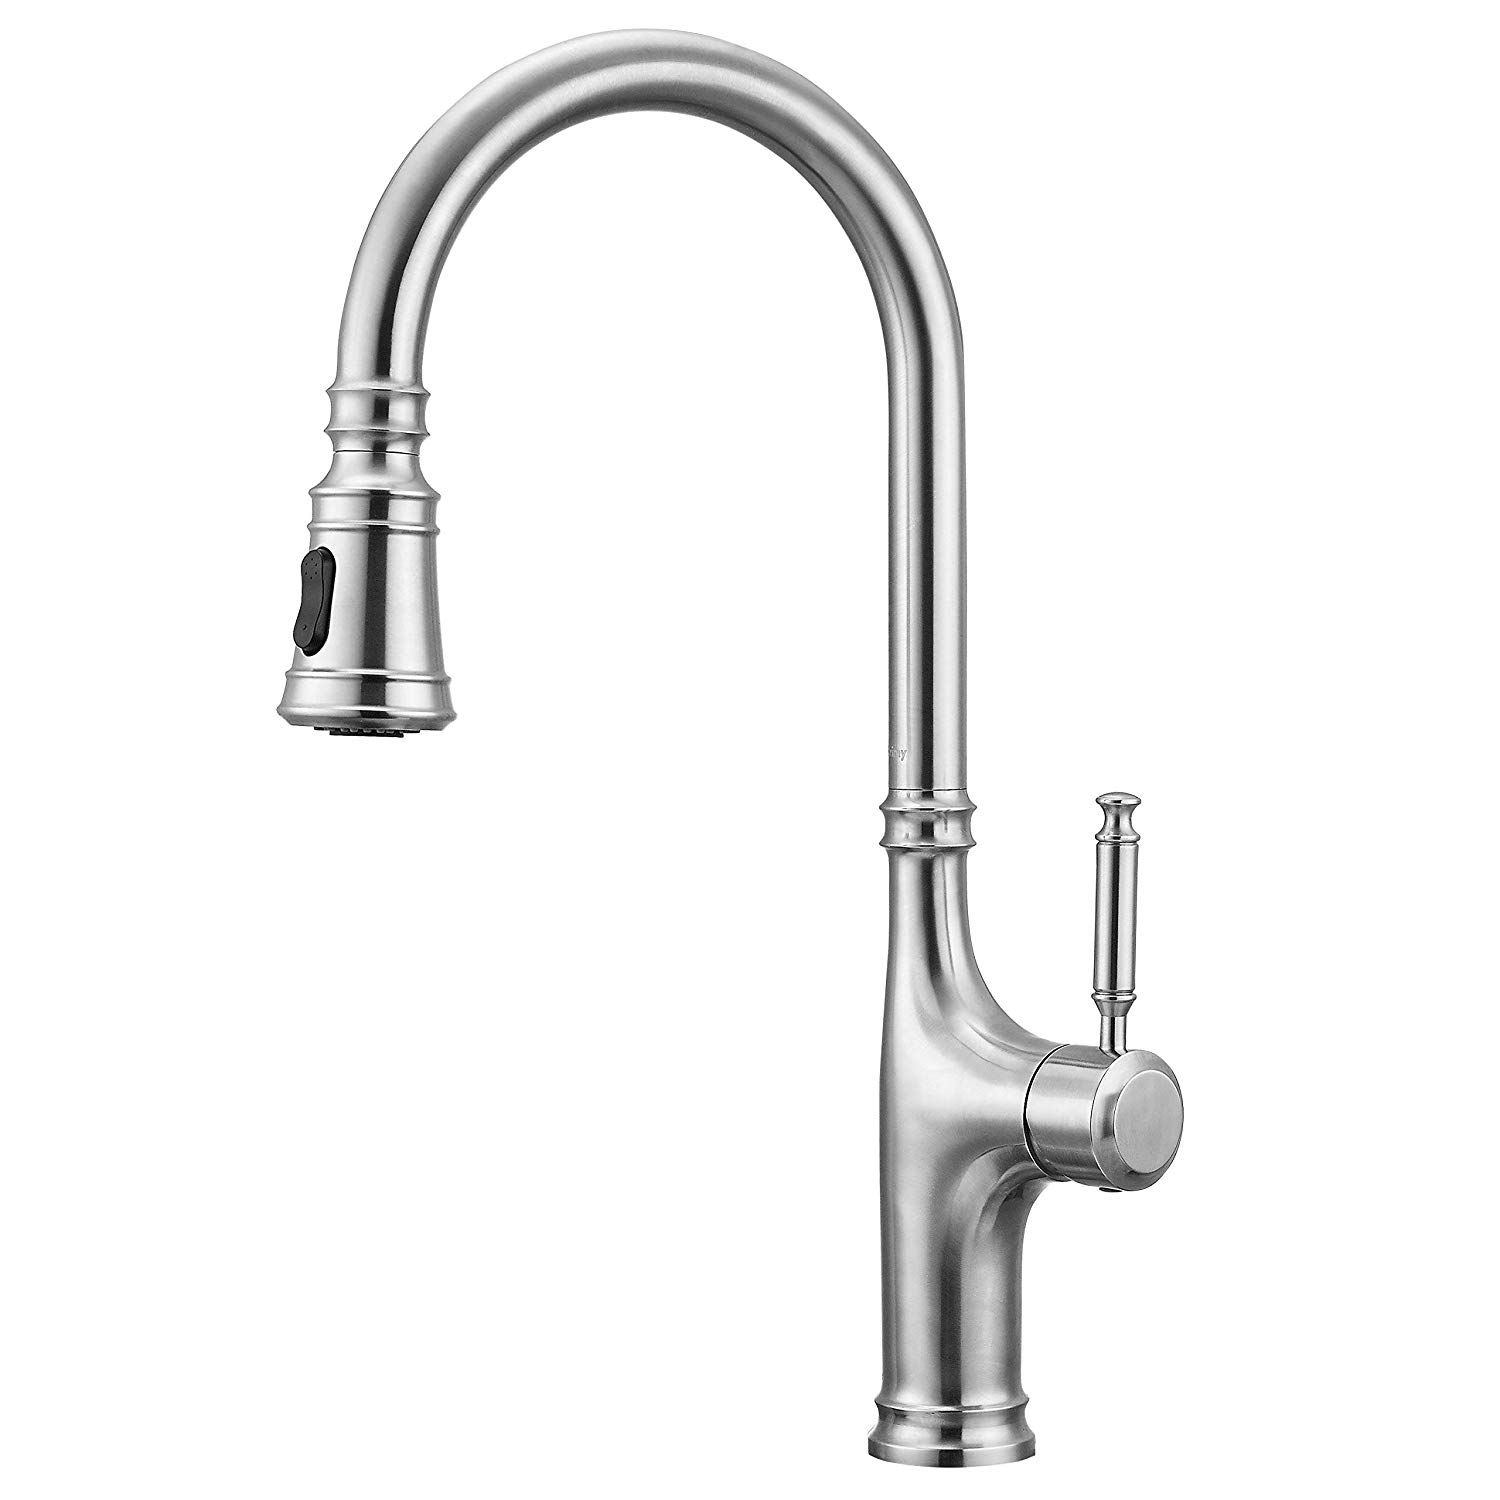 Primy Kitchen Faucets With Pull Down Sprayer Modern Heavy Duty